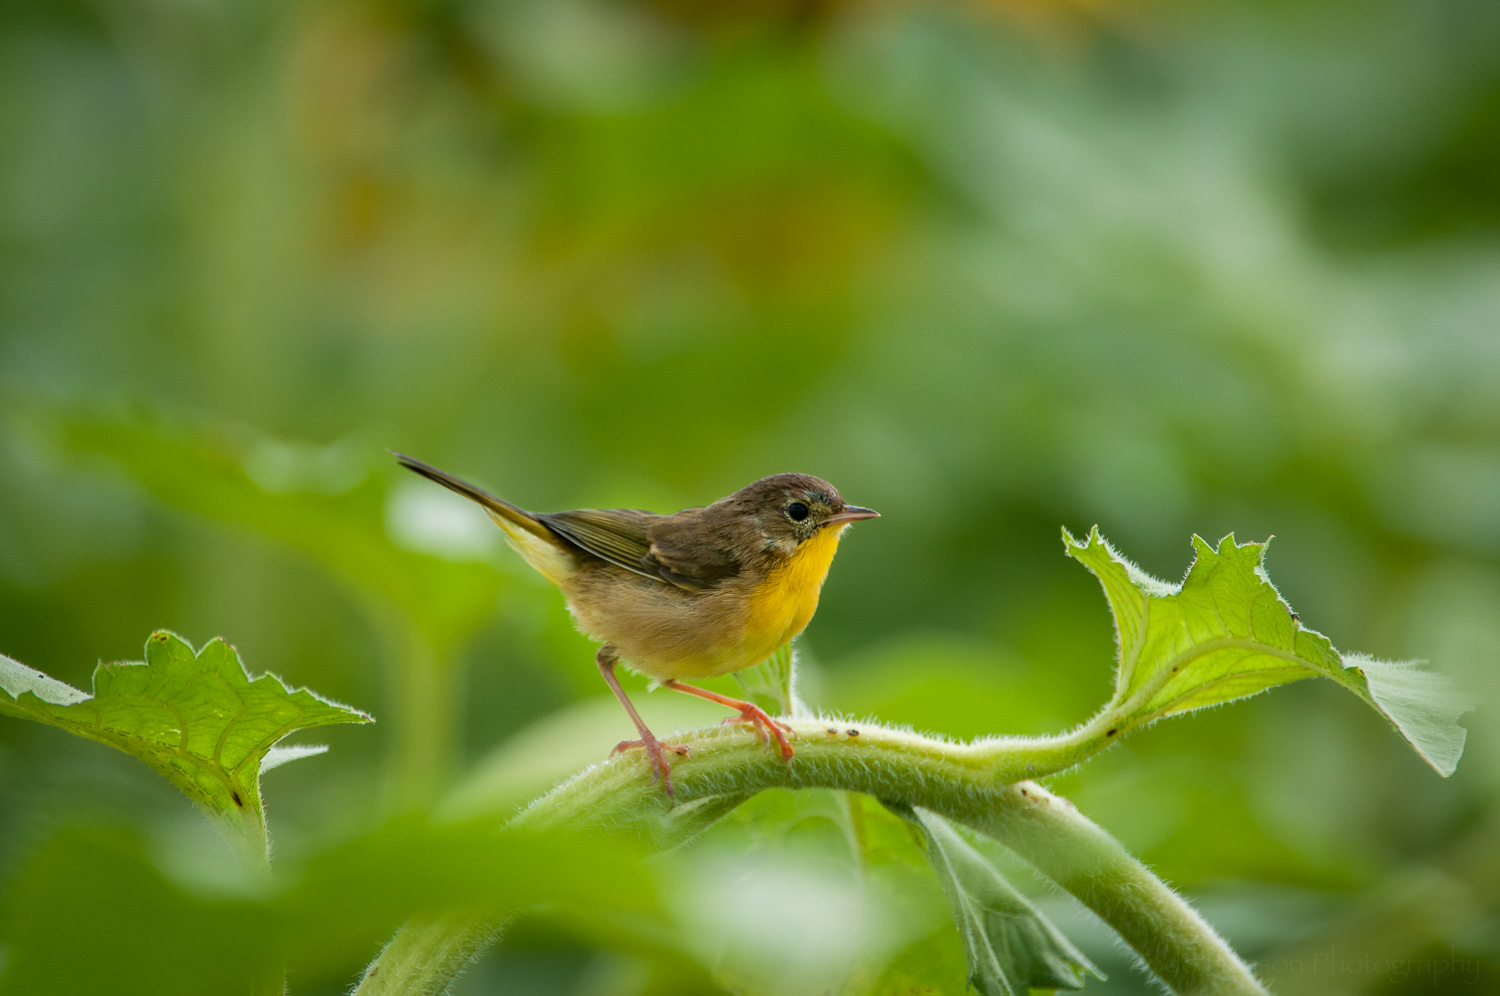 A Common Yellowthroat Warbler